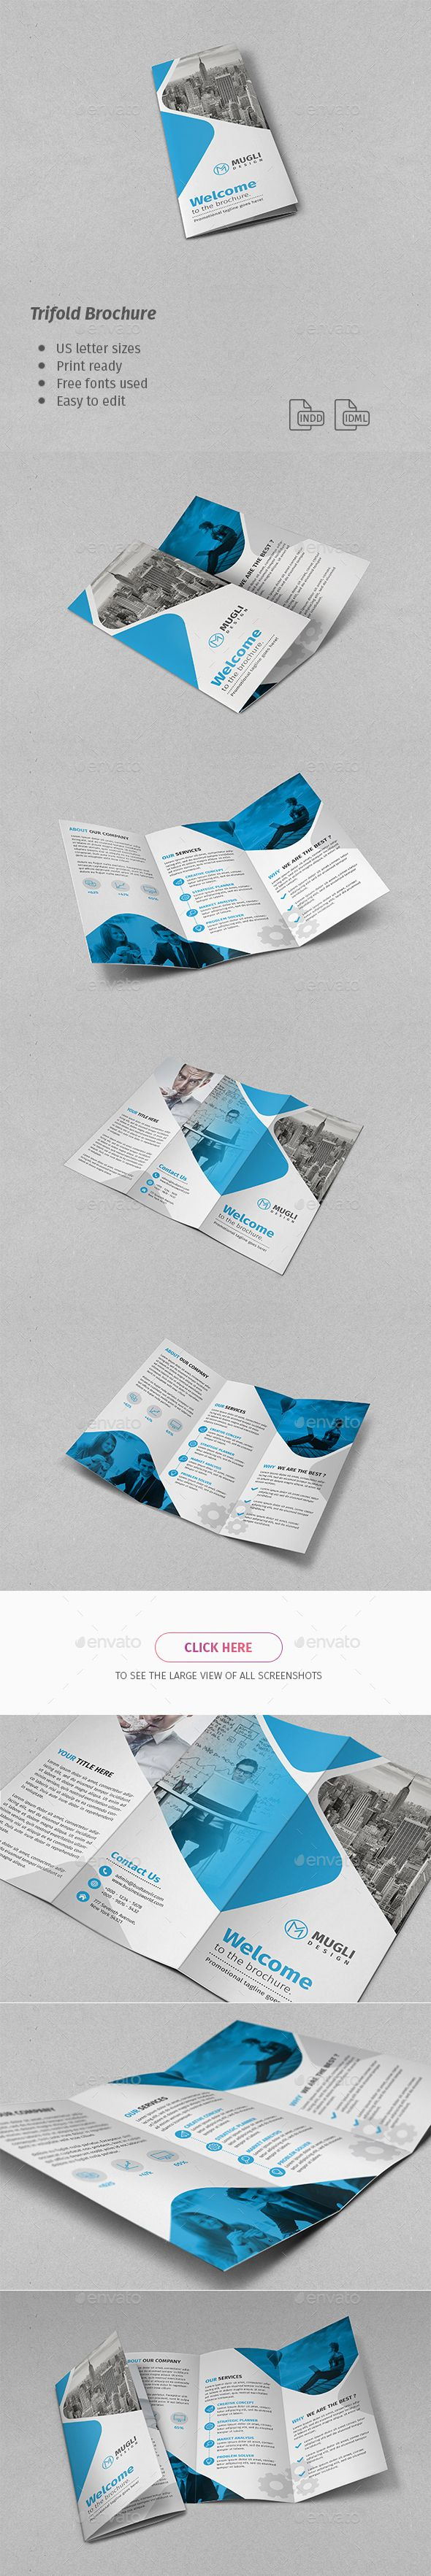 Corporate Trifold Brochure Template InDesign INDD #design Download: http://graphicriver.net/item/corporate-trifold-brochure/14221036?ref=ksioks